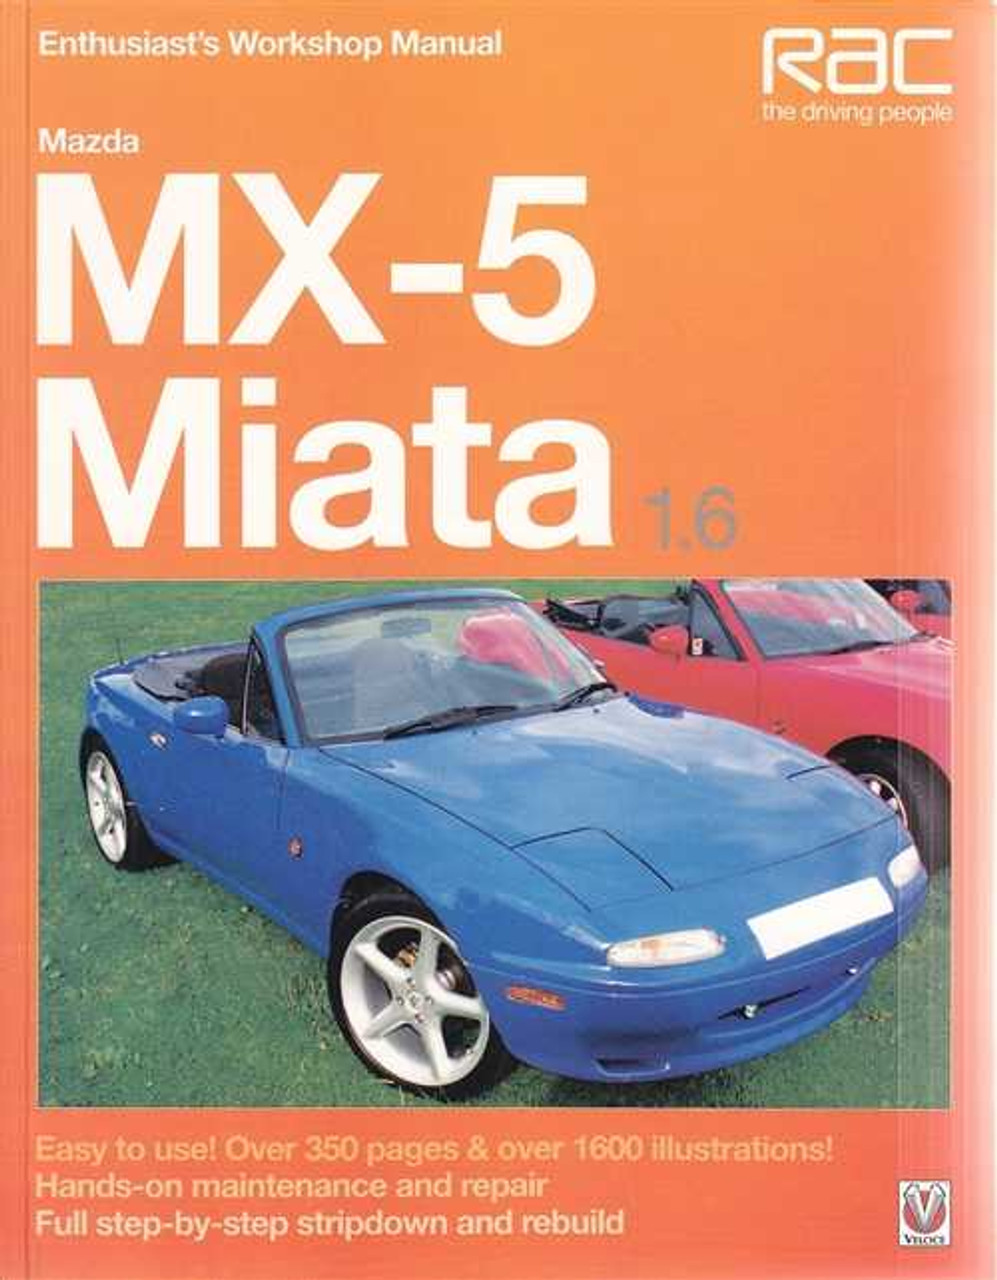 mazda mx5 mx 5 1997 repair service manual rh mazda mx5 mx 5 1997 repair service manual tem 1998 Mazda Miata 1990 Mazda Miata